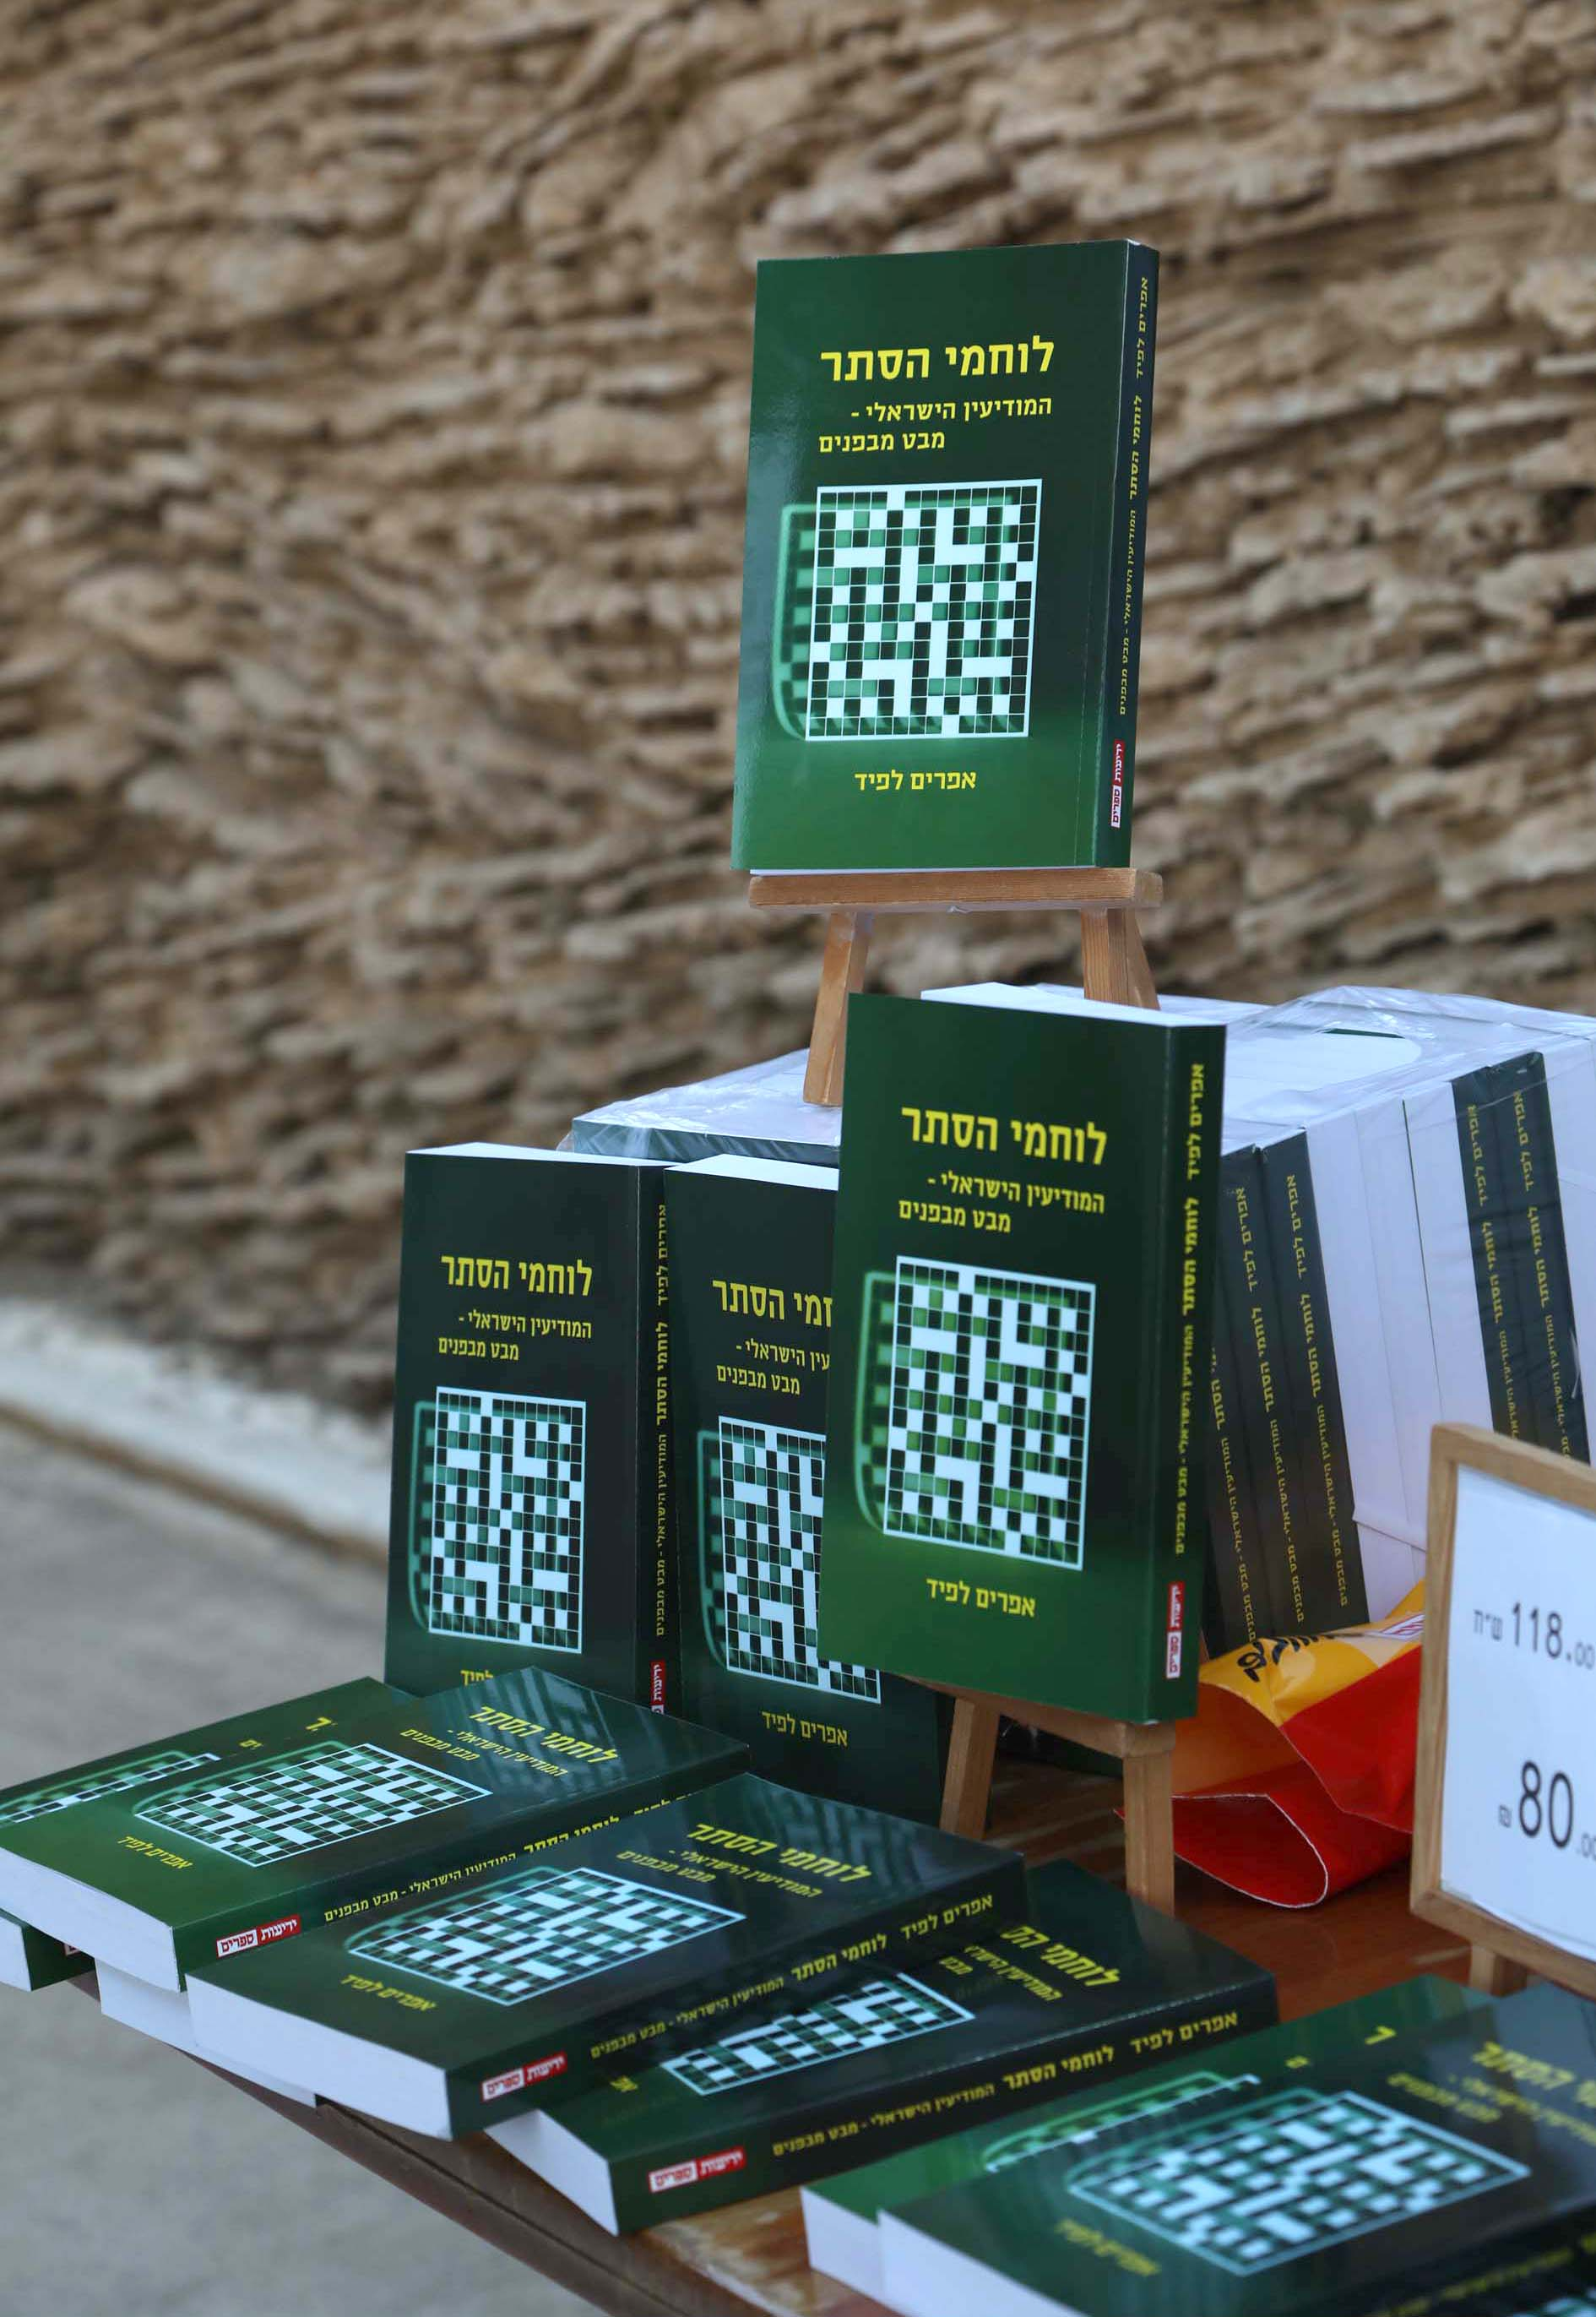 From the book Launch in Tel aviv, October 2017, photo: Sivan Farag